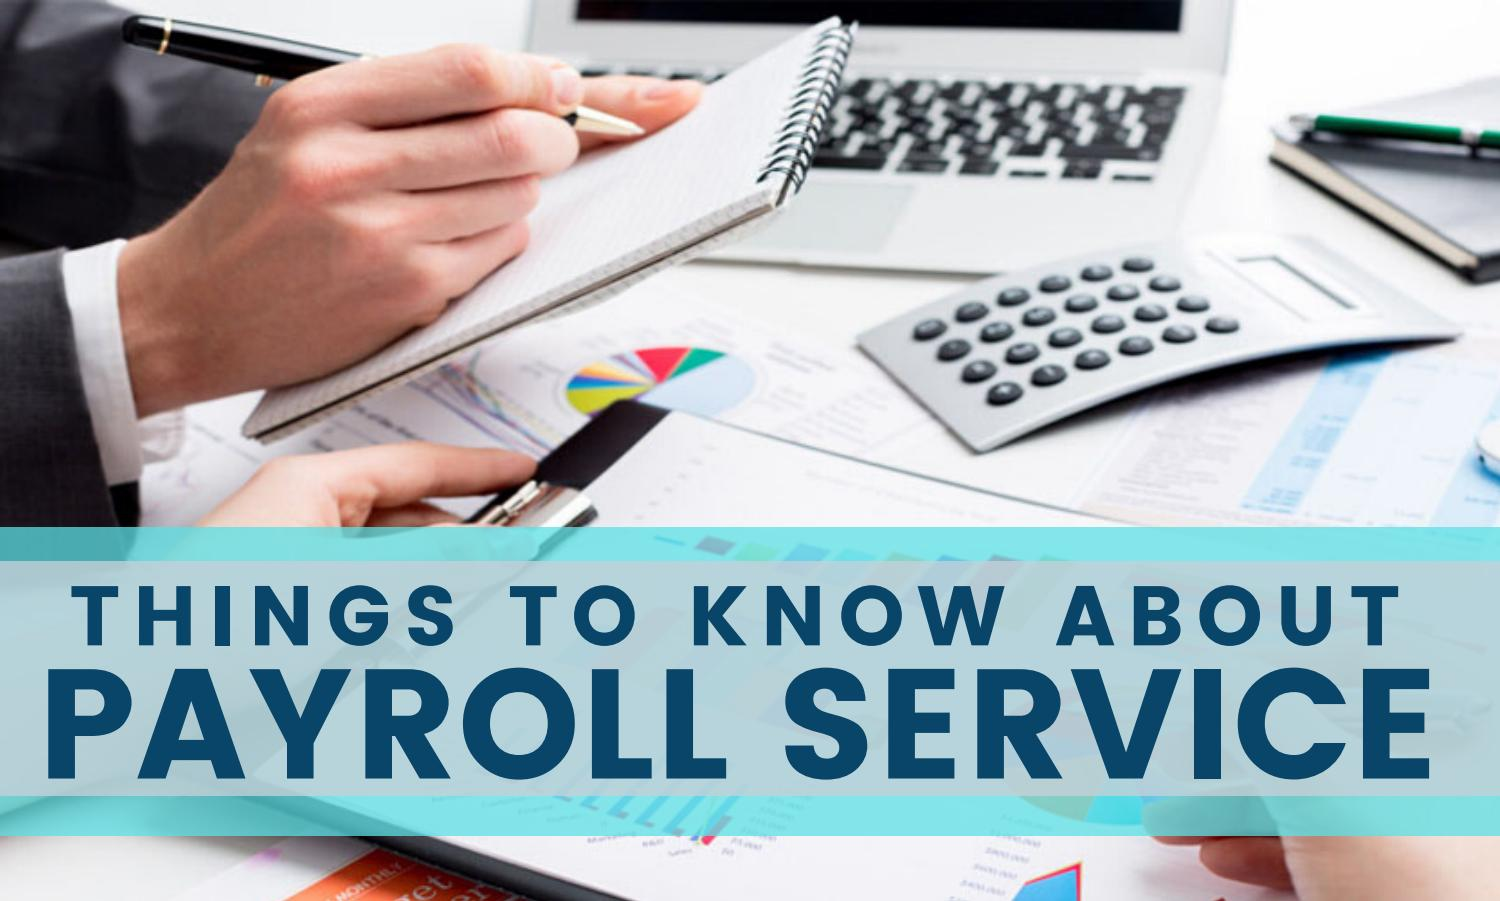 How To Find A Payroll Service That Fits Your Business?